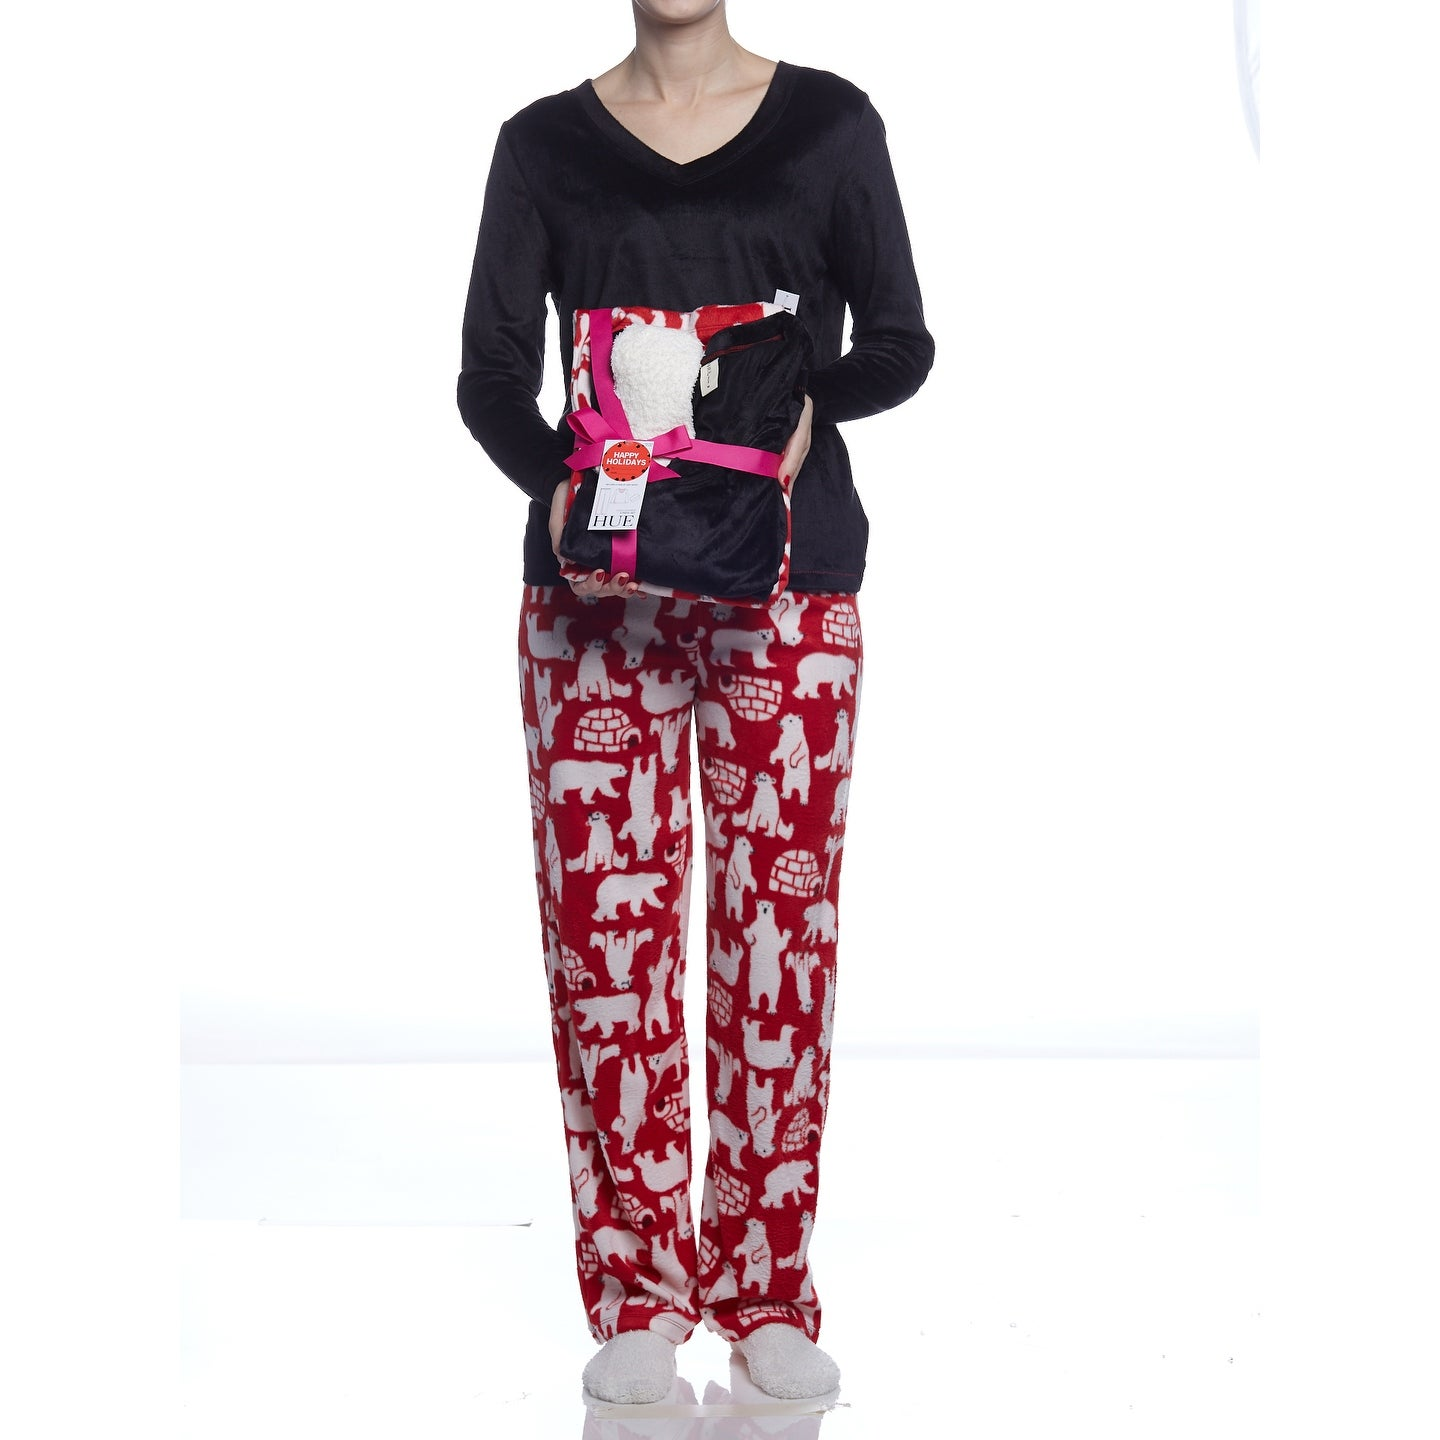 760d50a9b536 Shop Hue Sleepwear Women s Polar Bear Fleece Pajama Set With Socks ...